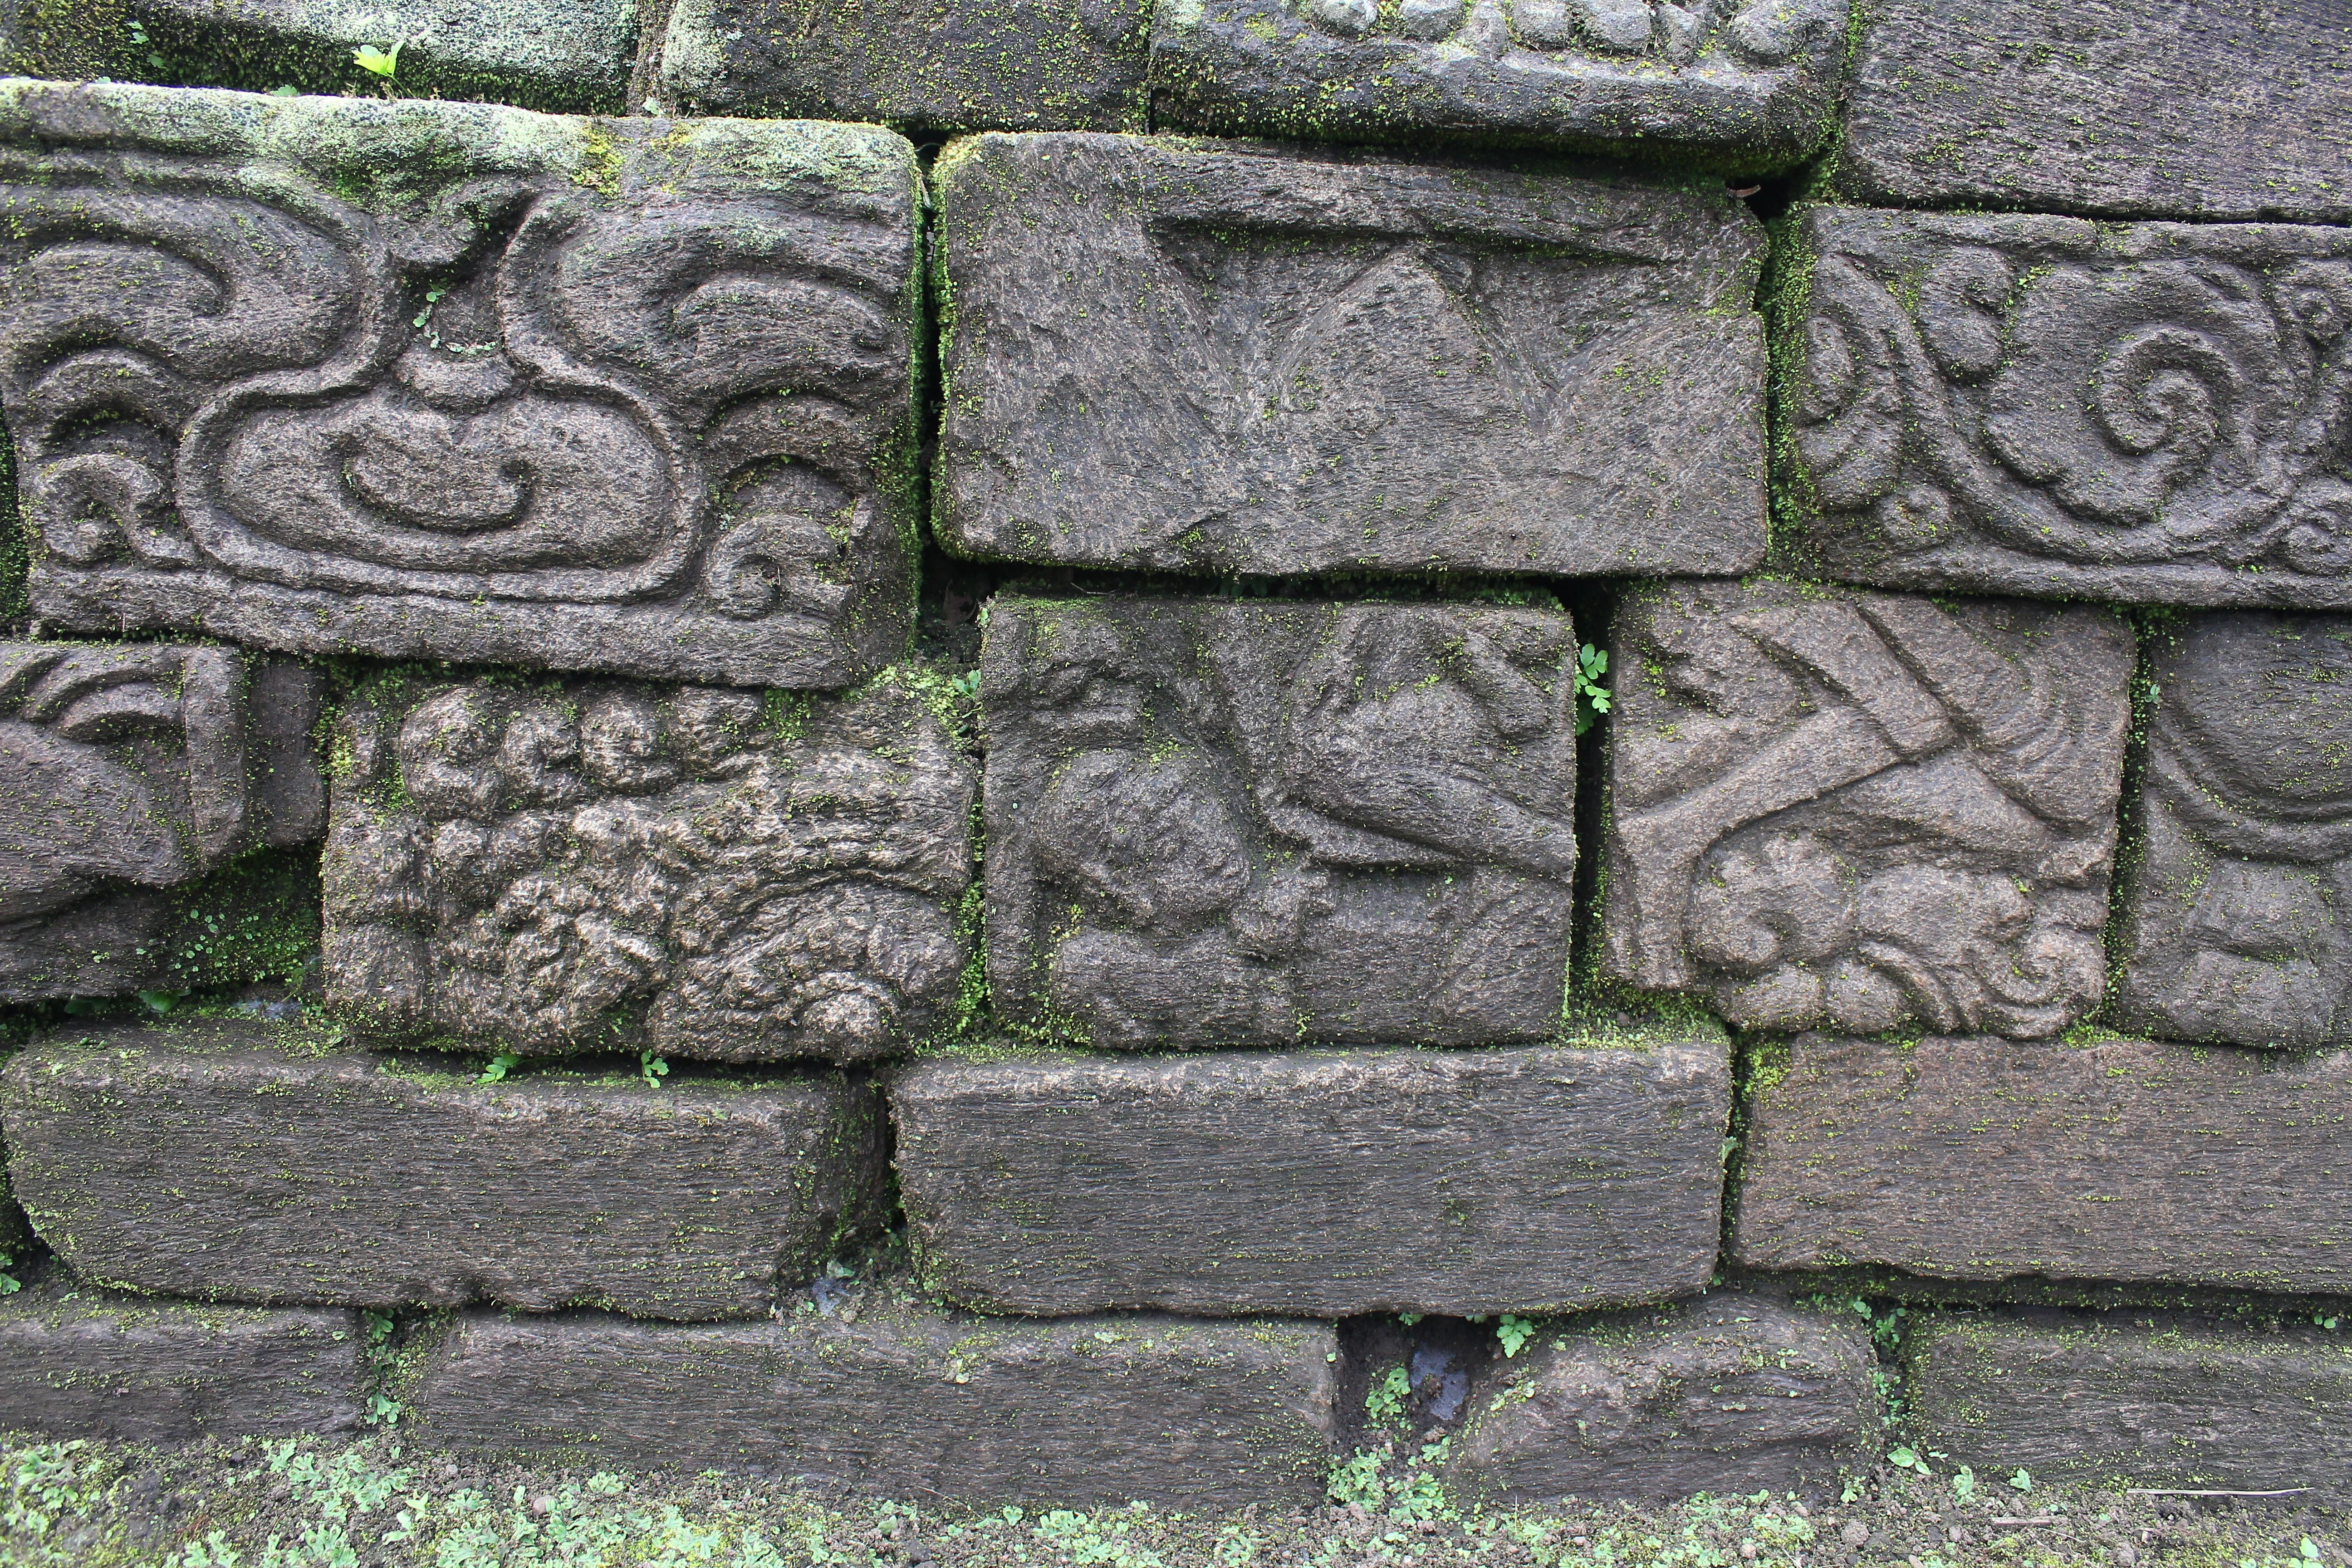 Remains of relief carvings in a wall